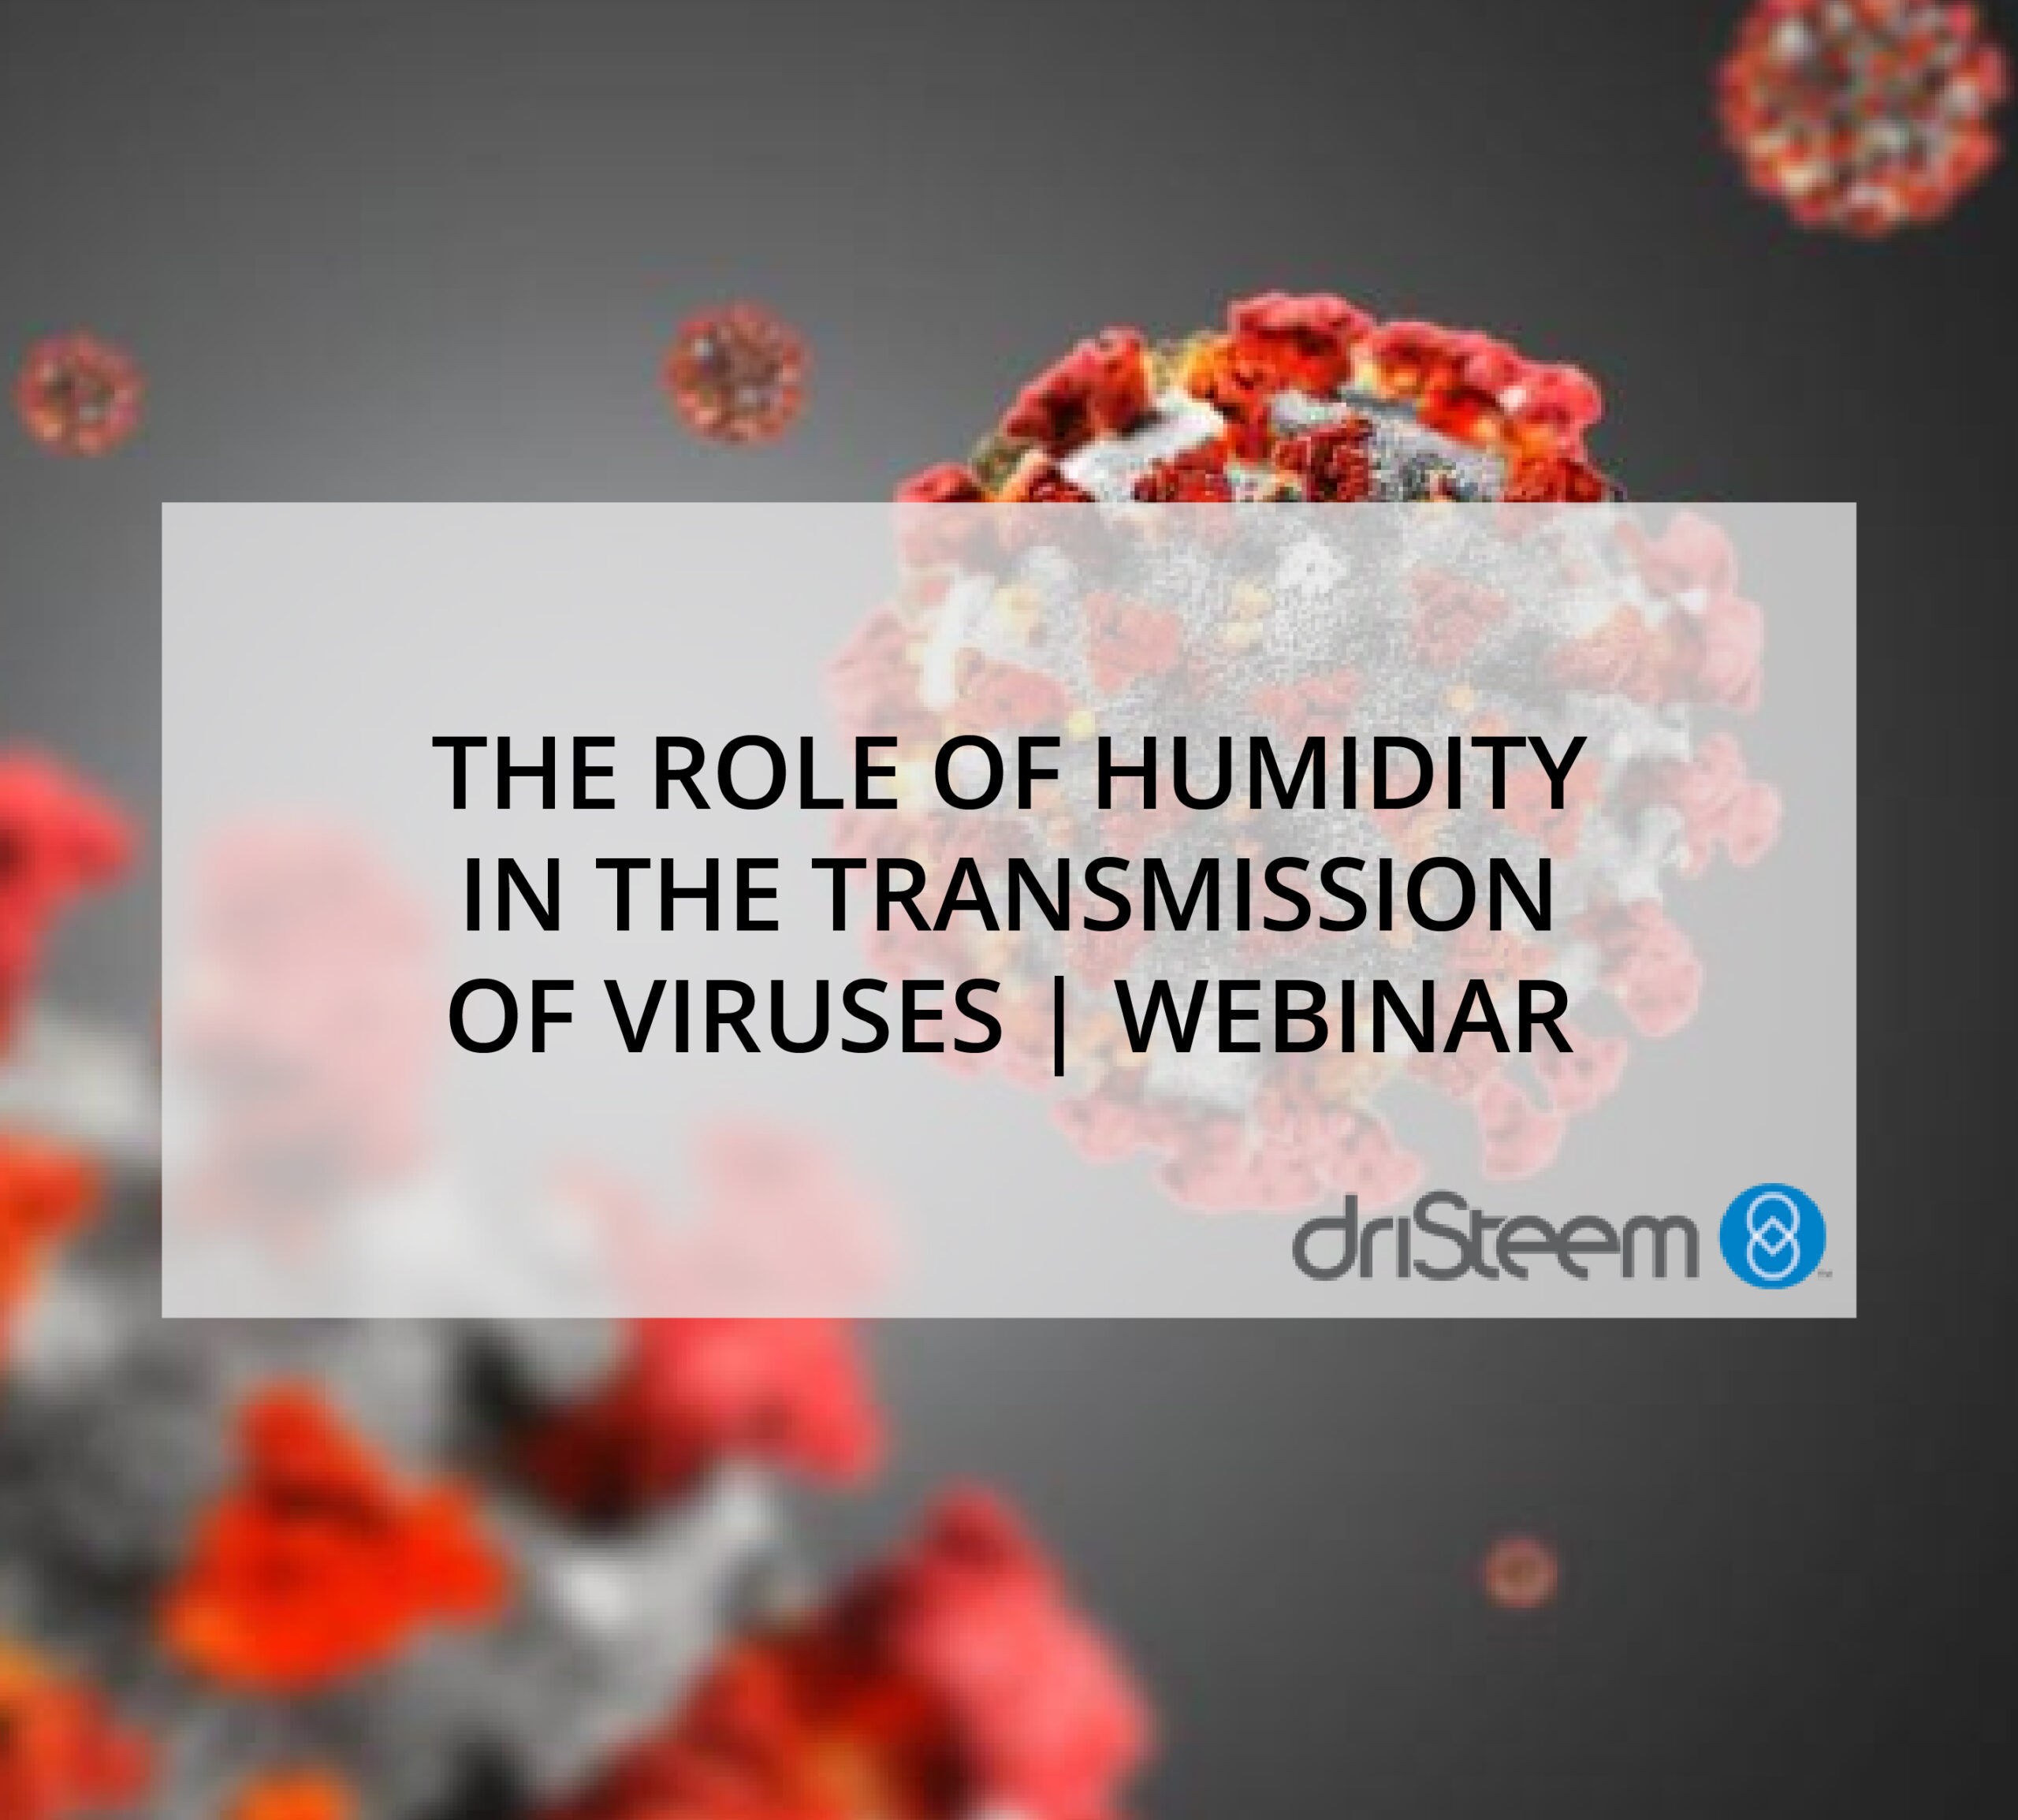 THE ROLE OF HUMIDITY IN THE TRANSMISSION OF VIRUSES | DRISTEEM WEBINAR